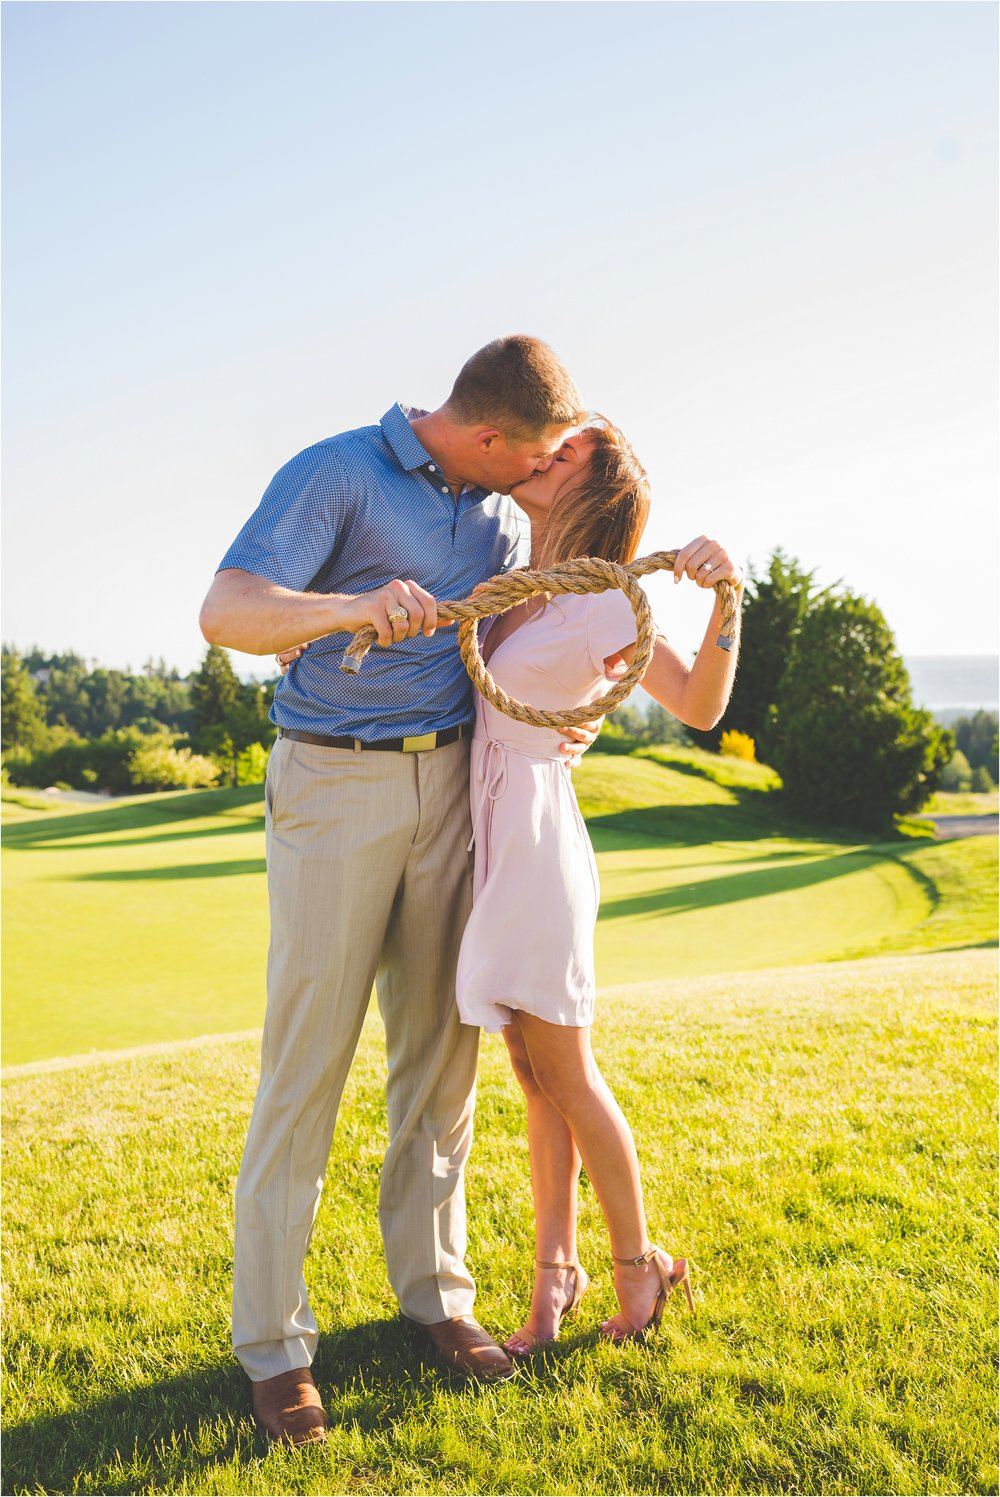 newcastle-golf-club-proposal-jannicka-mayte-seattle-washington-engagement-wedding-photographer_0019.jpg